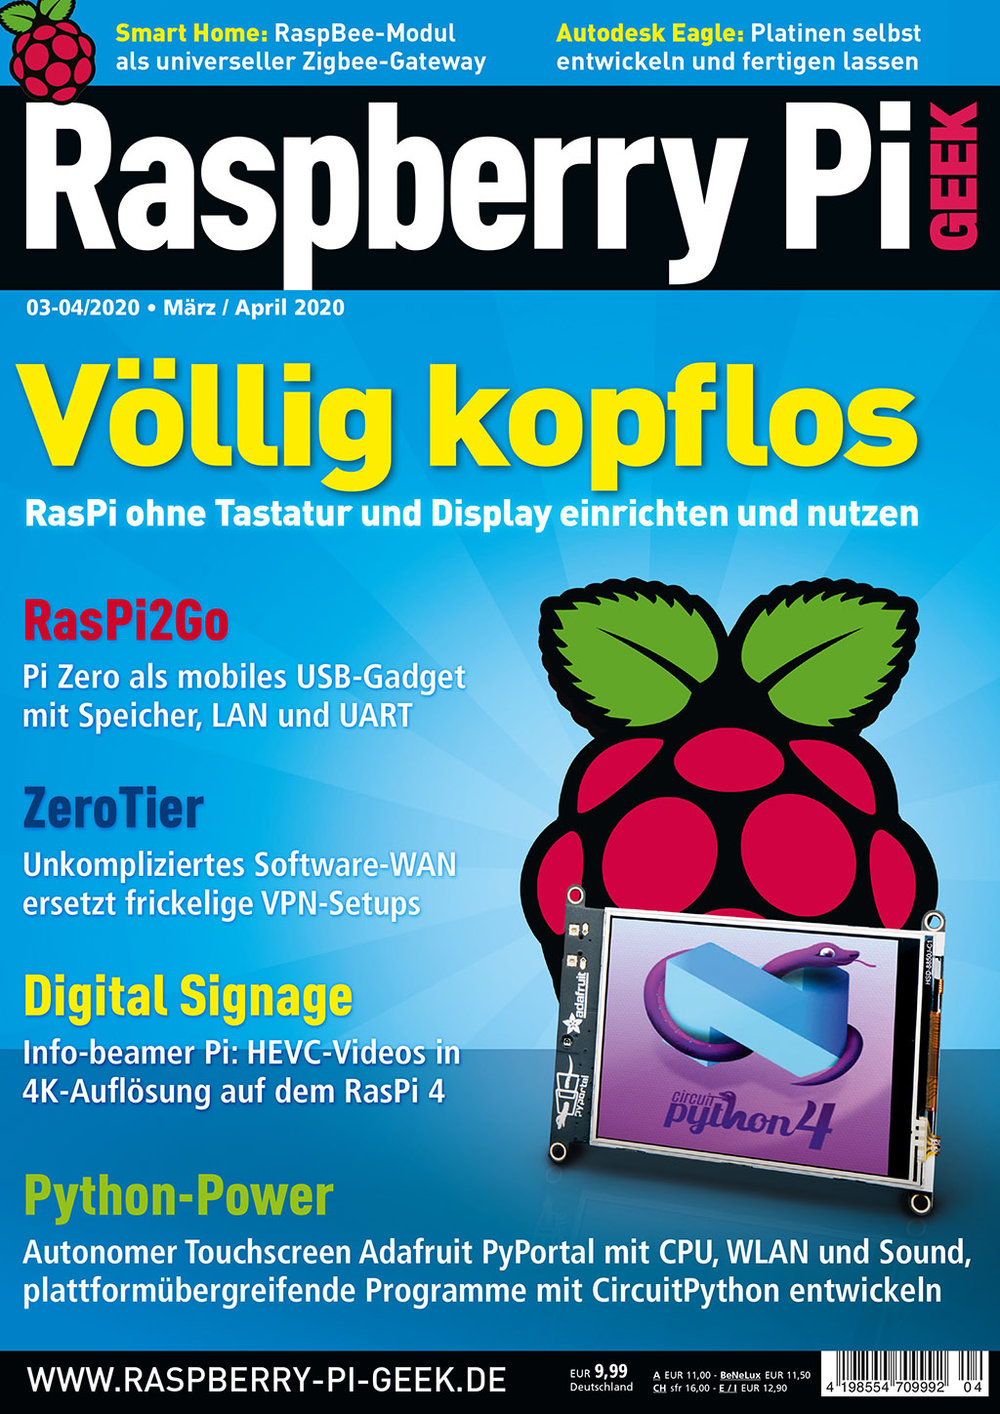 Raspberry Pi Geek 03-04/2020